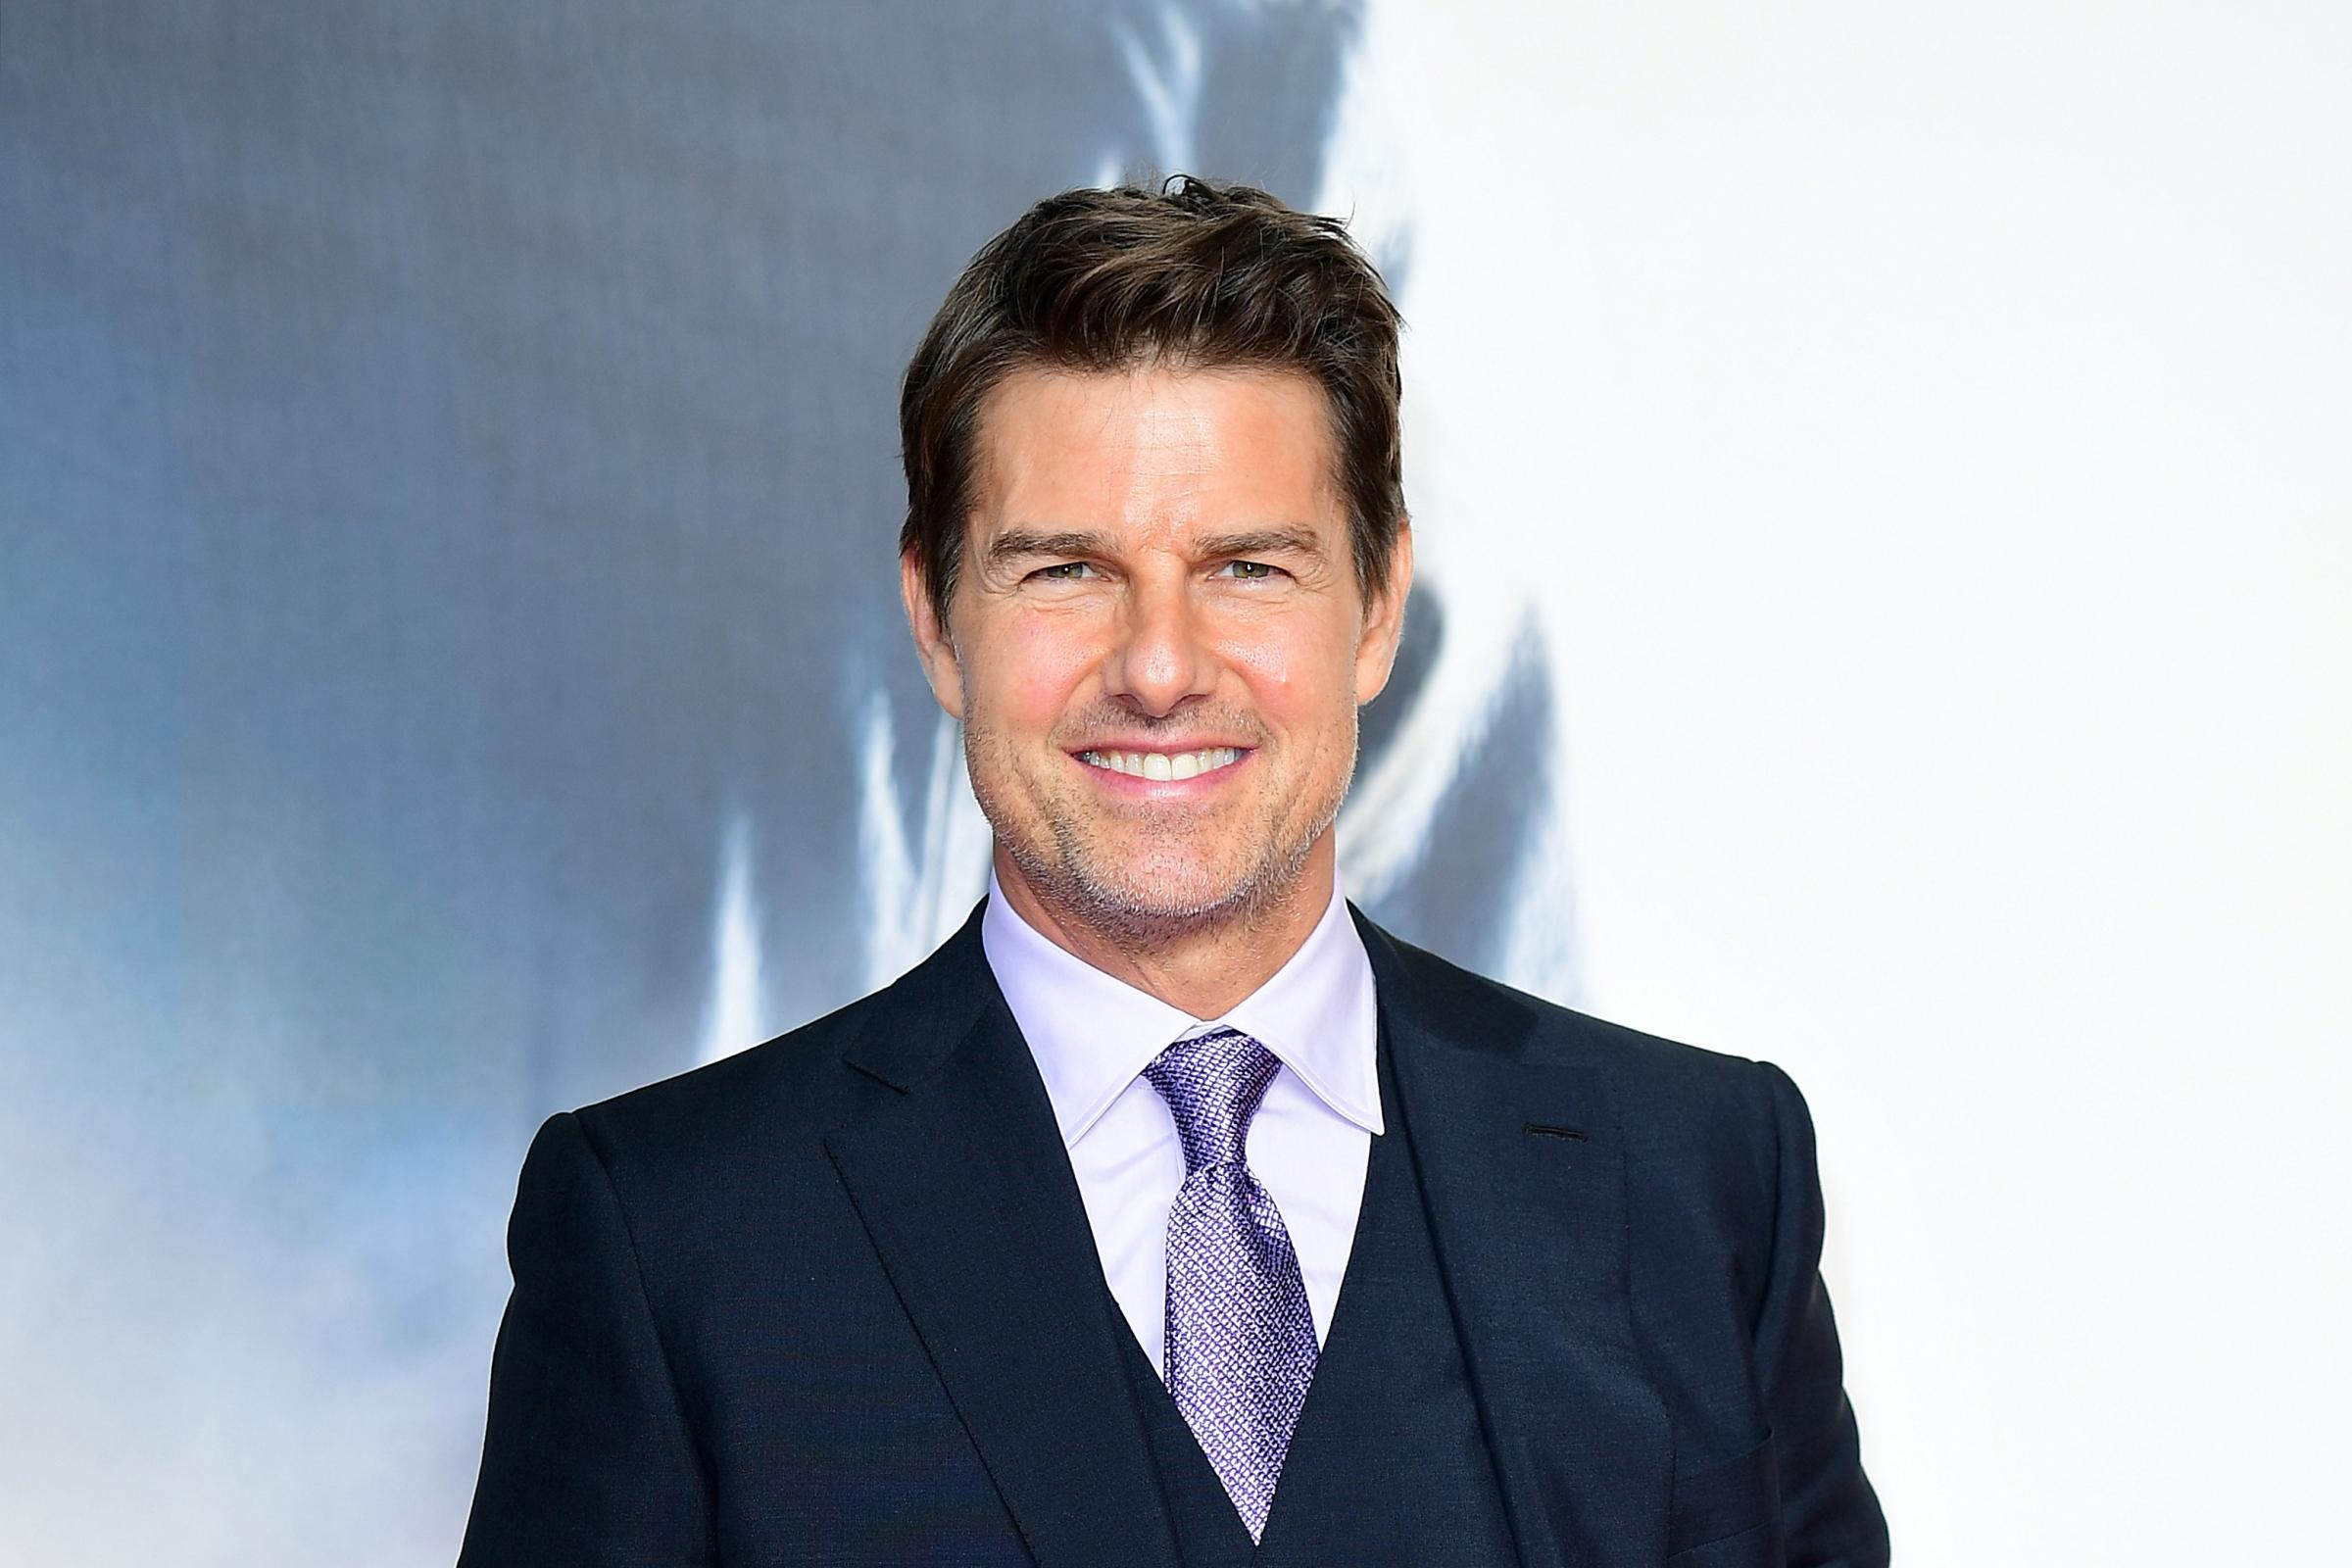 Tom Cruise at the Mission Impossible Fallout Premiere